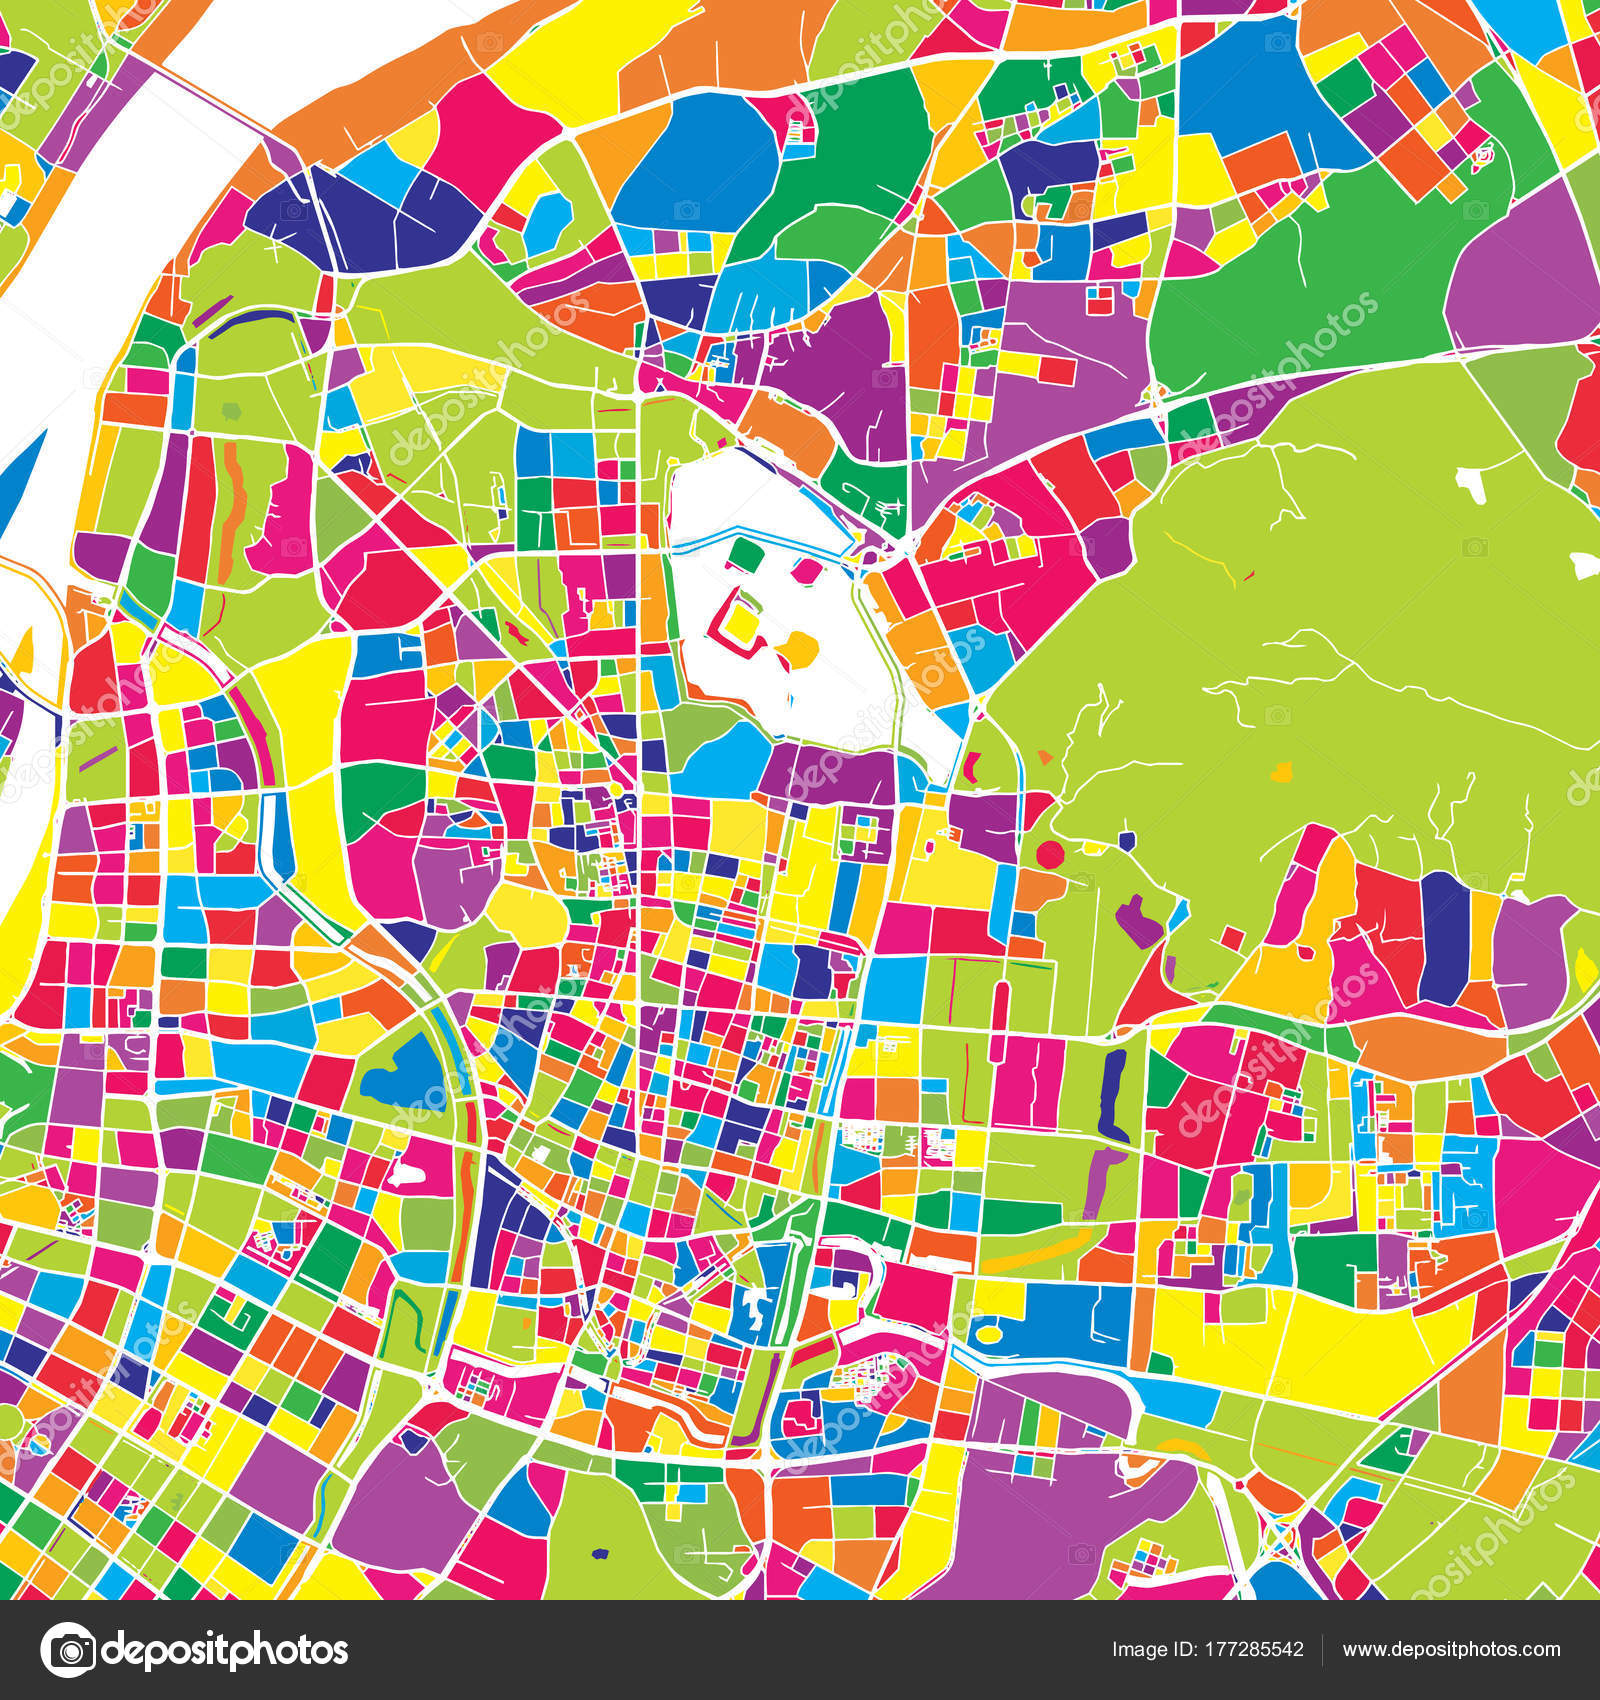 Nanjing China Colorful Vector Map Stock Vector C Mail Hebstreit